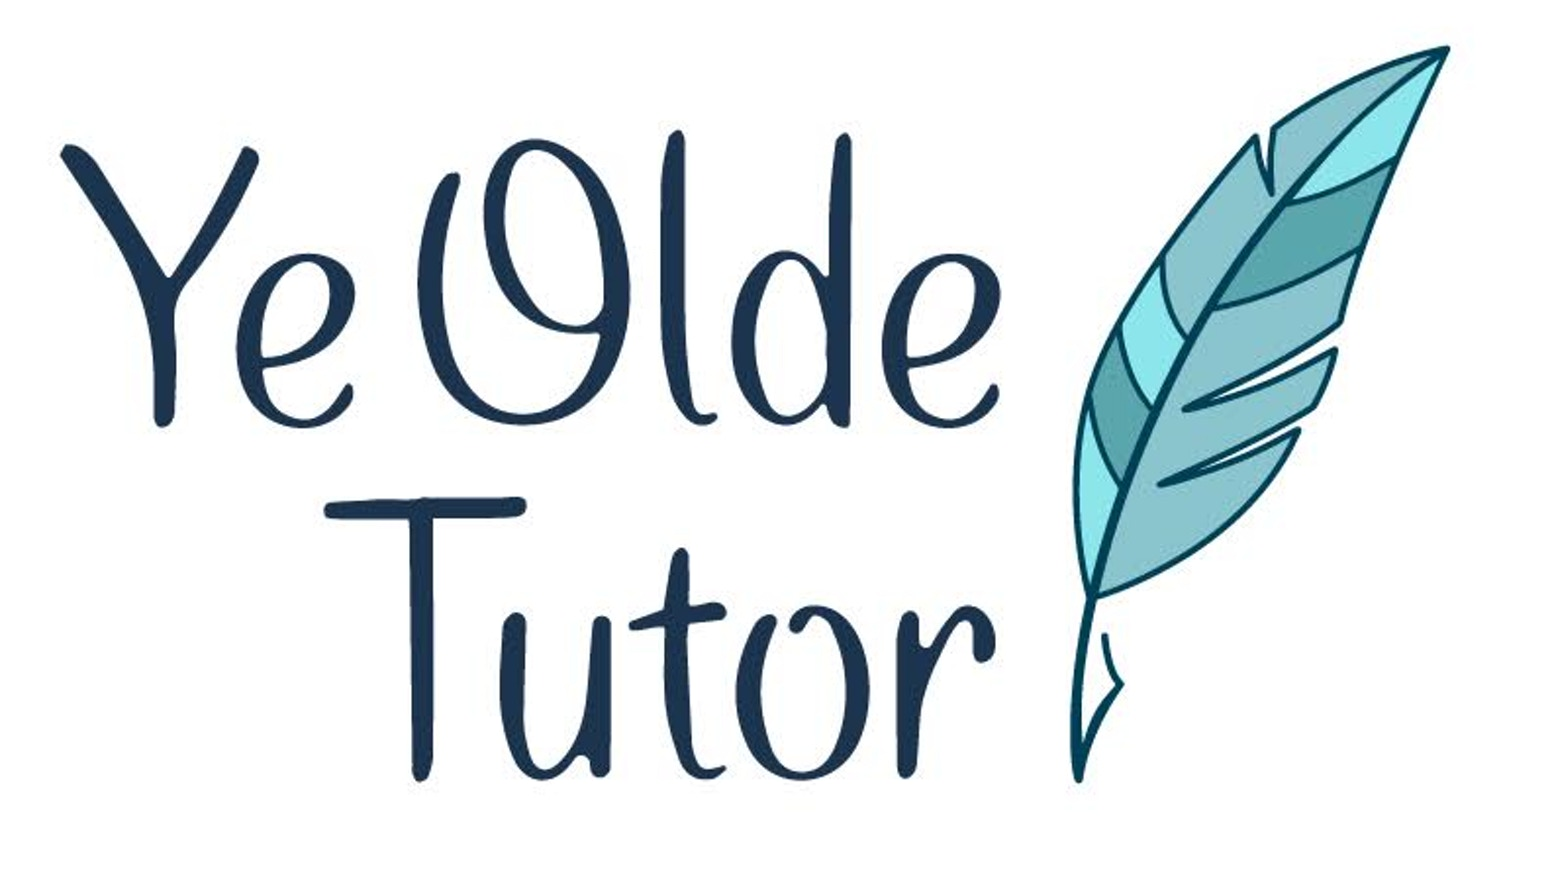 Help us take Language Arts tutoring where it has never gone before. The quality of olde meets the science and software of today.